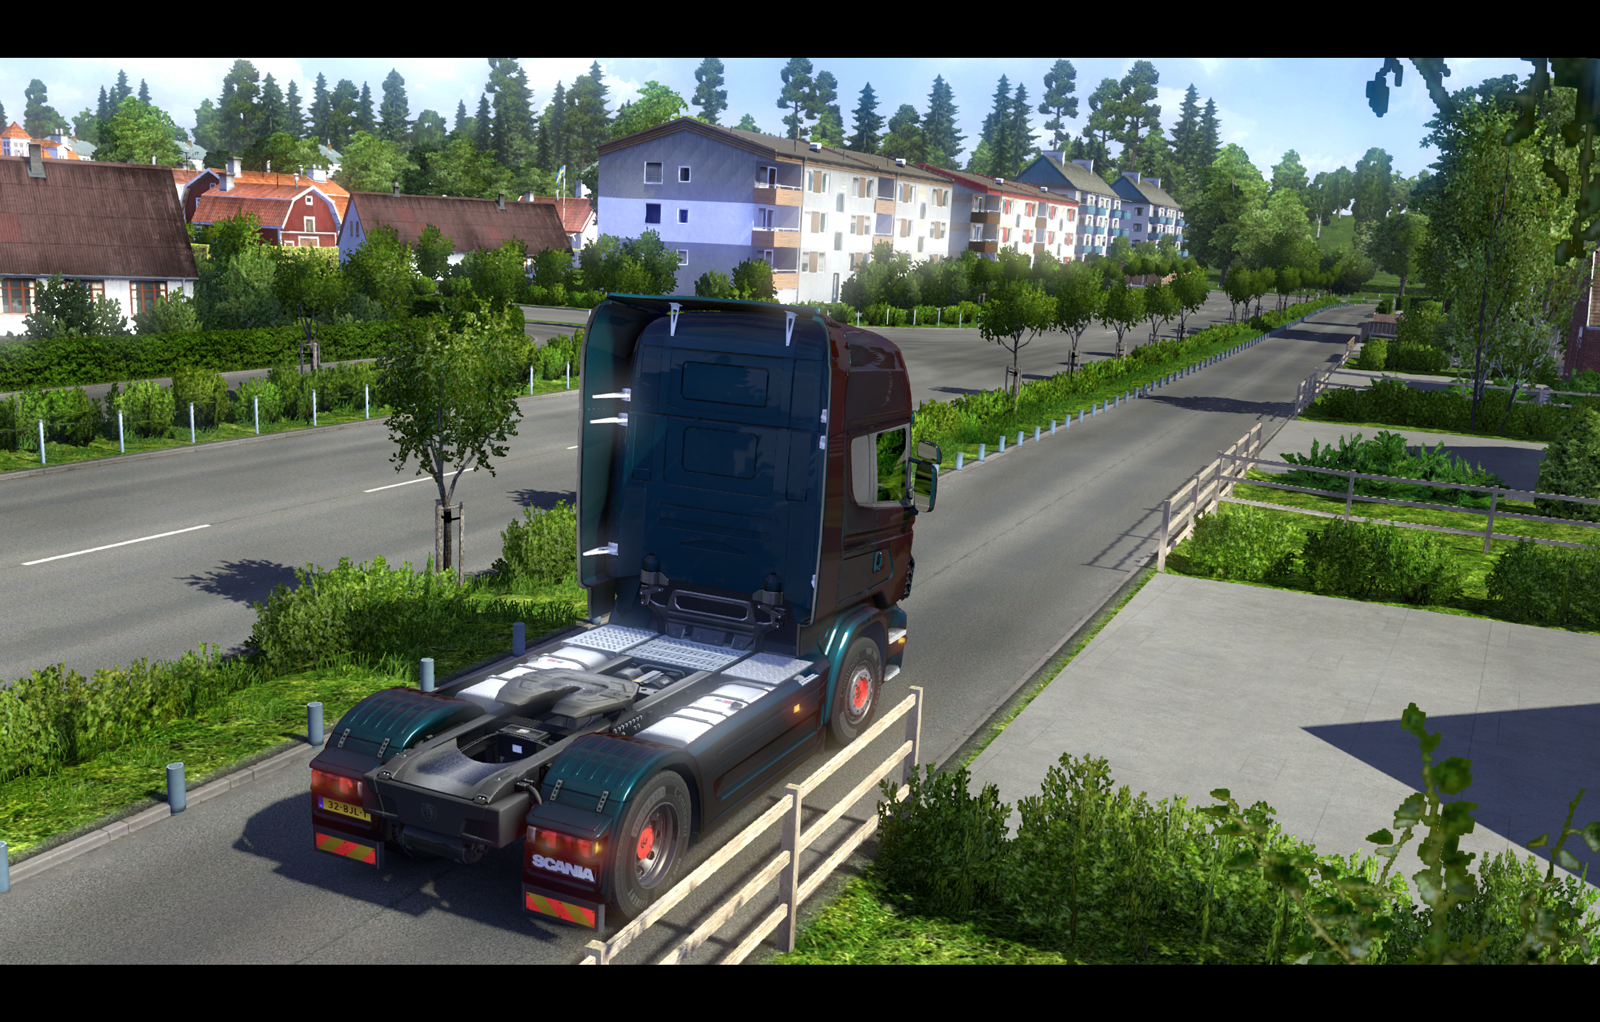 scs software 39 s blog driving in the north and oculus rift. Black Bedroom Furniture Sets. Home Design Ideas